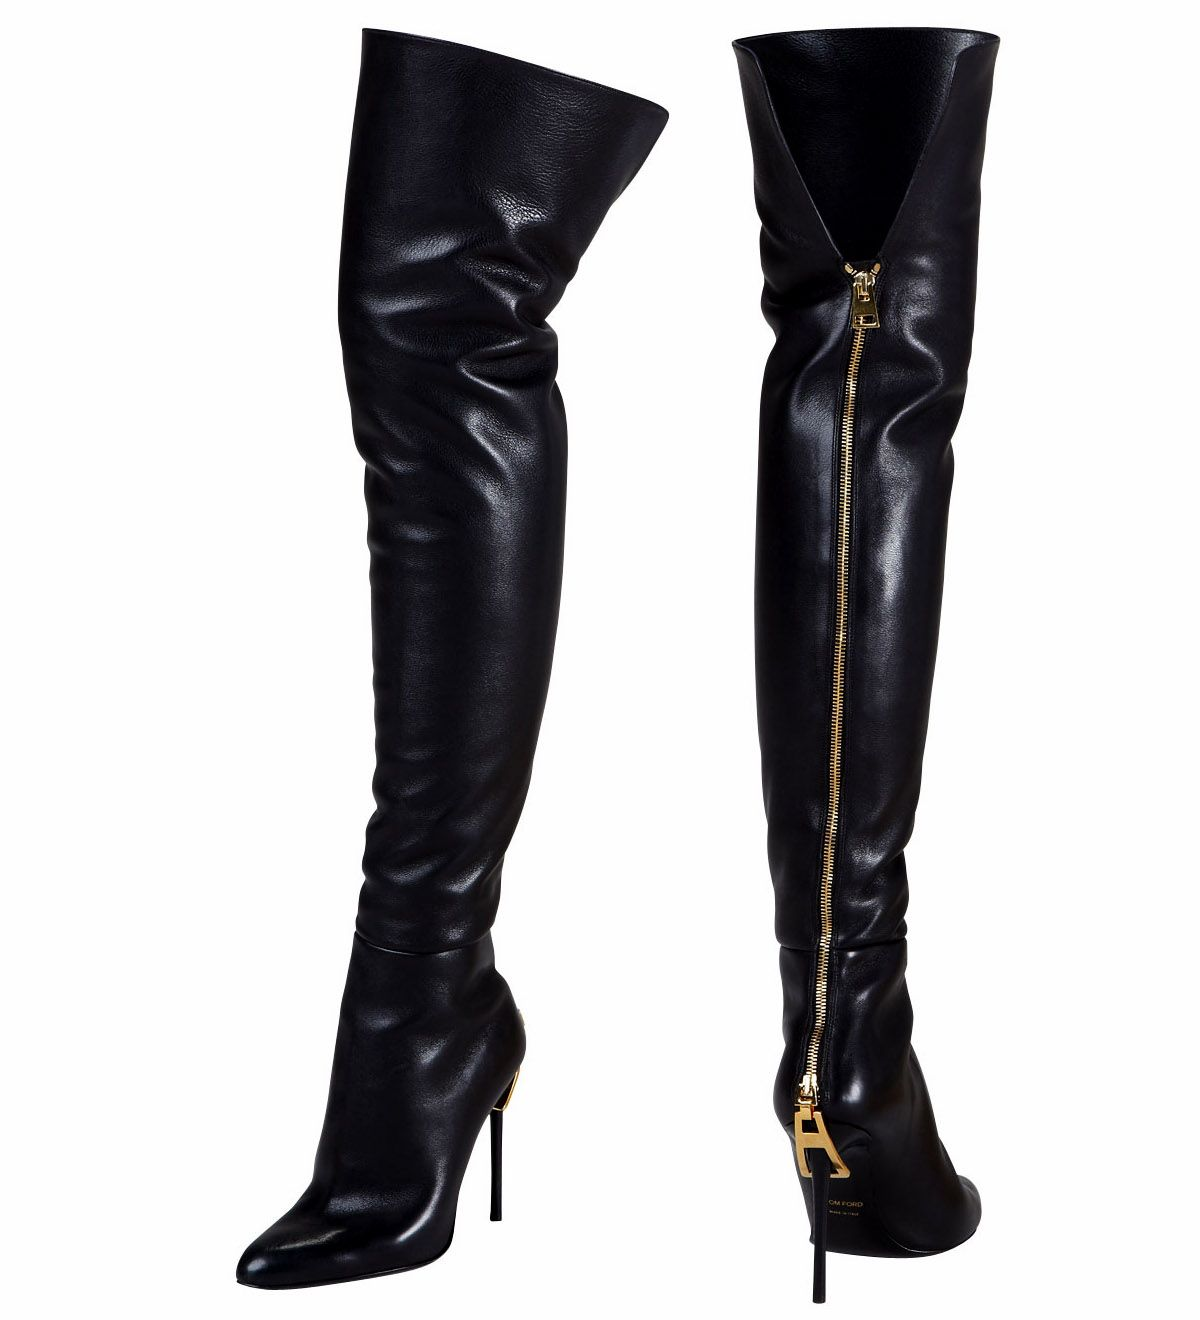 b312034709fd These over the knee leather boots will set off your next clothing ensemble.  Yes over the knee boots for women are a prized accessory in most shoe  closets.